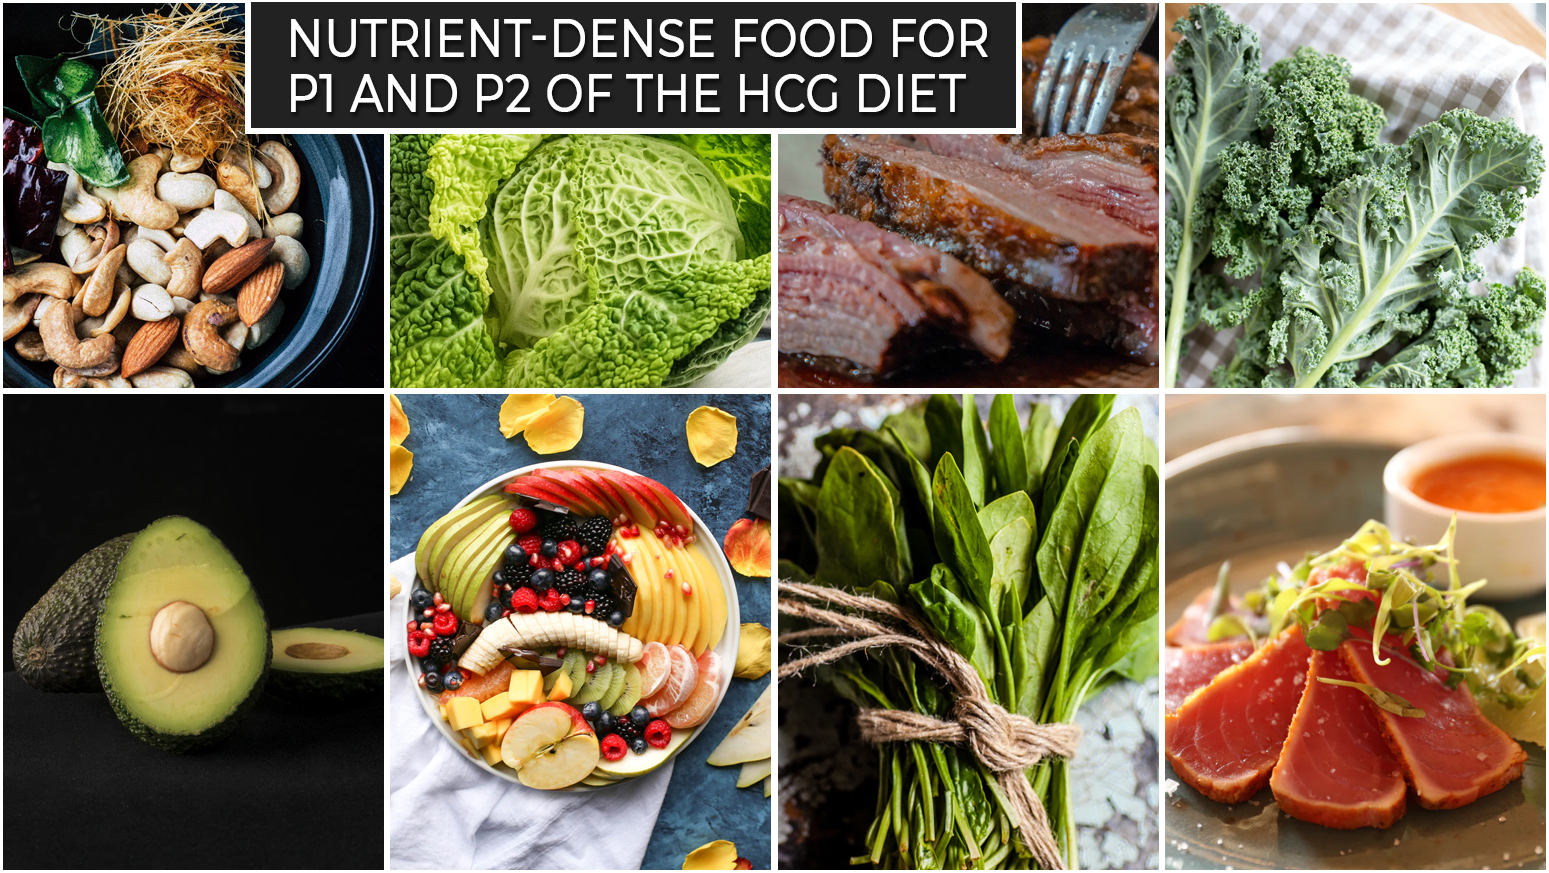 NUTRIENT-DENSE FOOD FOR P1 AND P2 OF THE HCG DIET